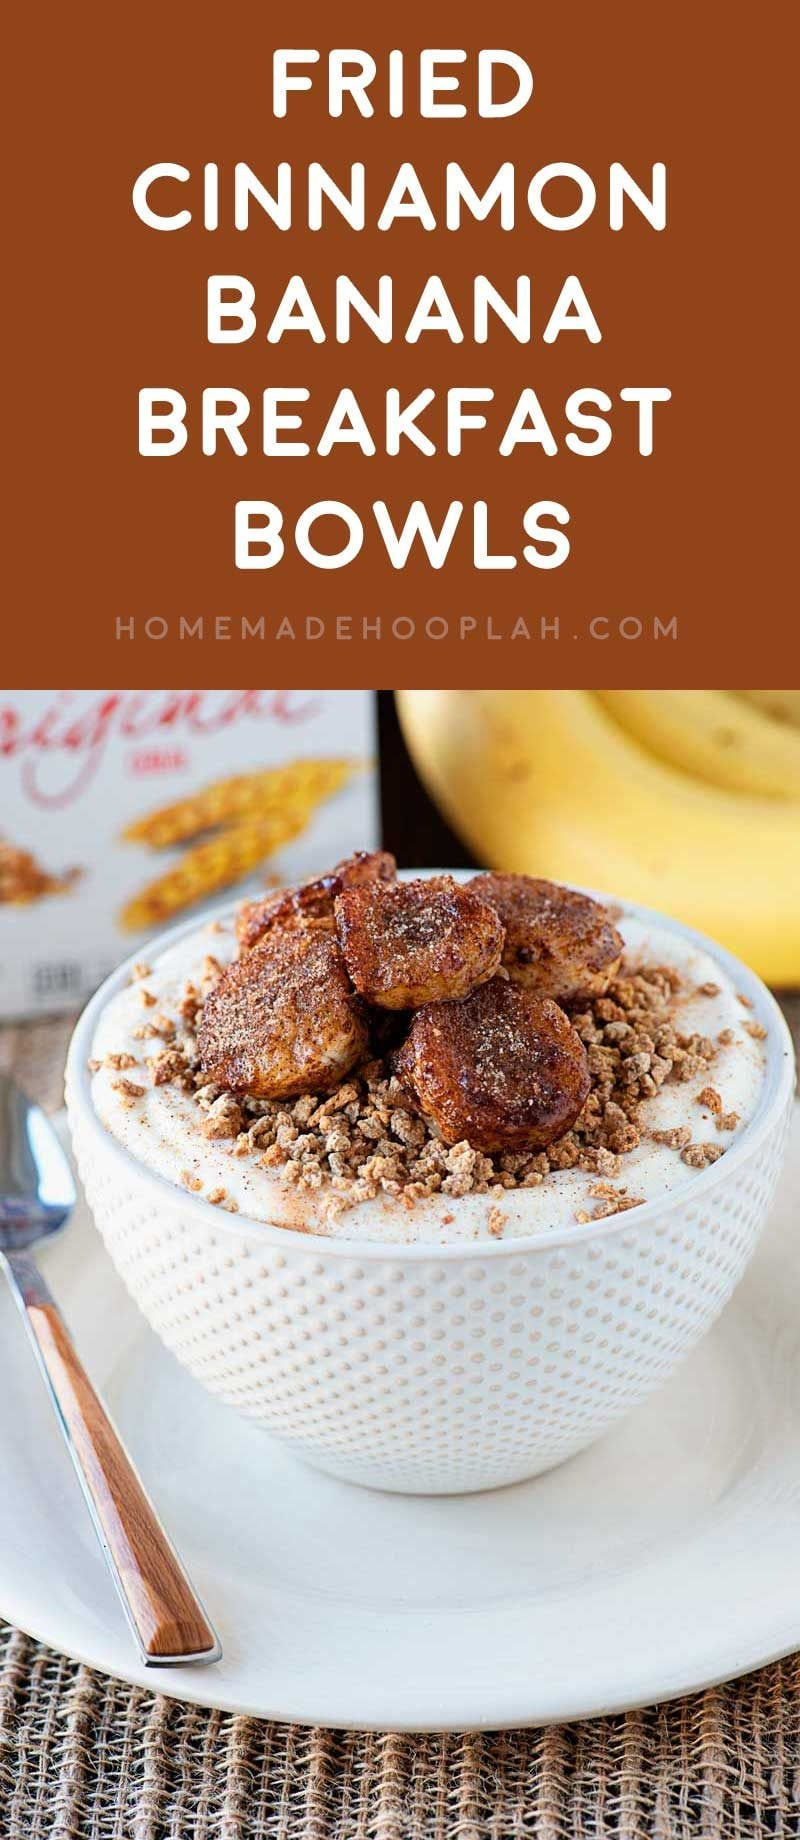 Fried Cinnamon Banana Breakfast Bowls! Creamy greek yogurt topped with Grape-Nuts®cereal and fried cinnamon bananas. Makes for an easy and delicious breakfast for busy mornings! #ad #Postfortheholidays #SINGMovieSweeps #PostSave$4 | HomemadeHooplah.com